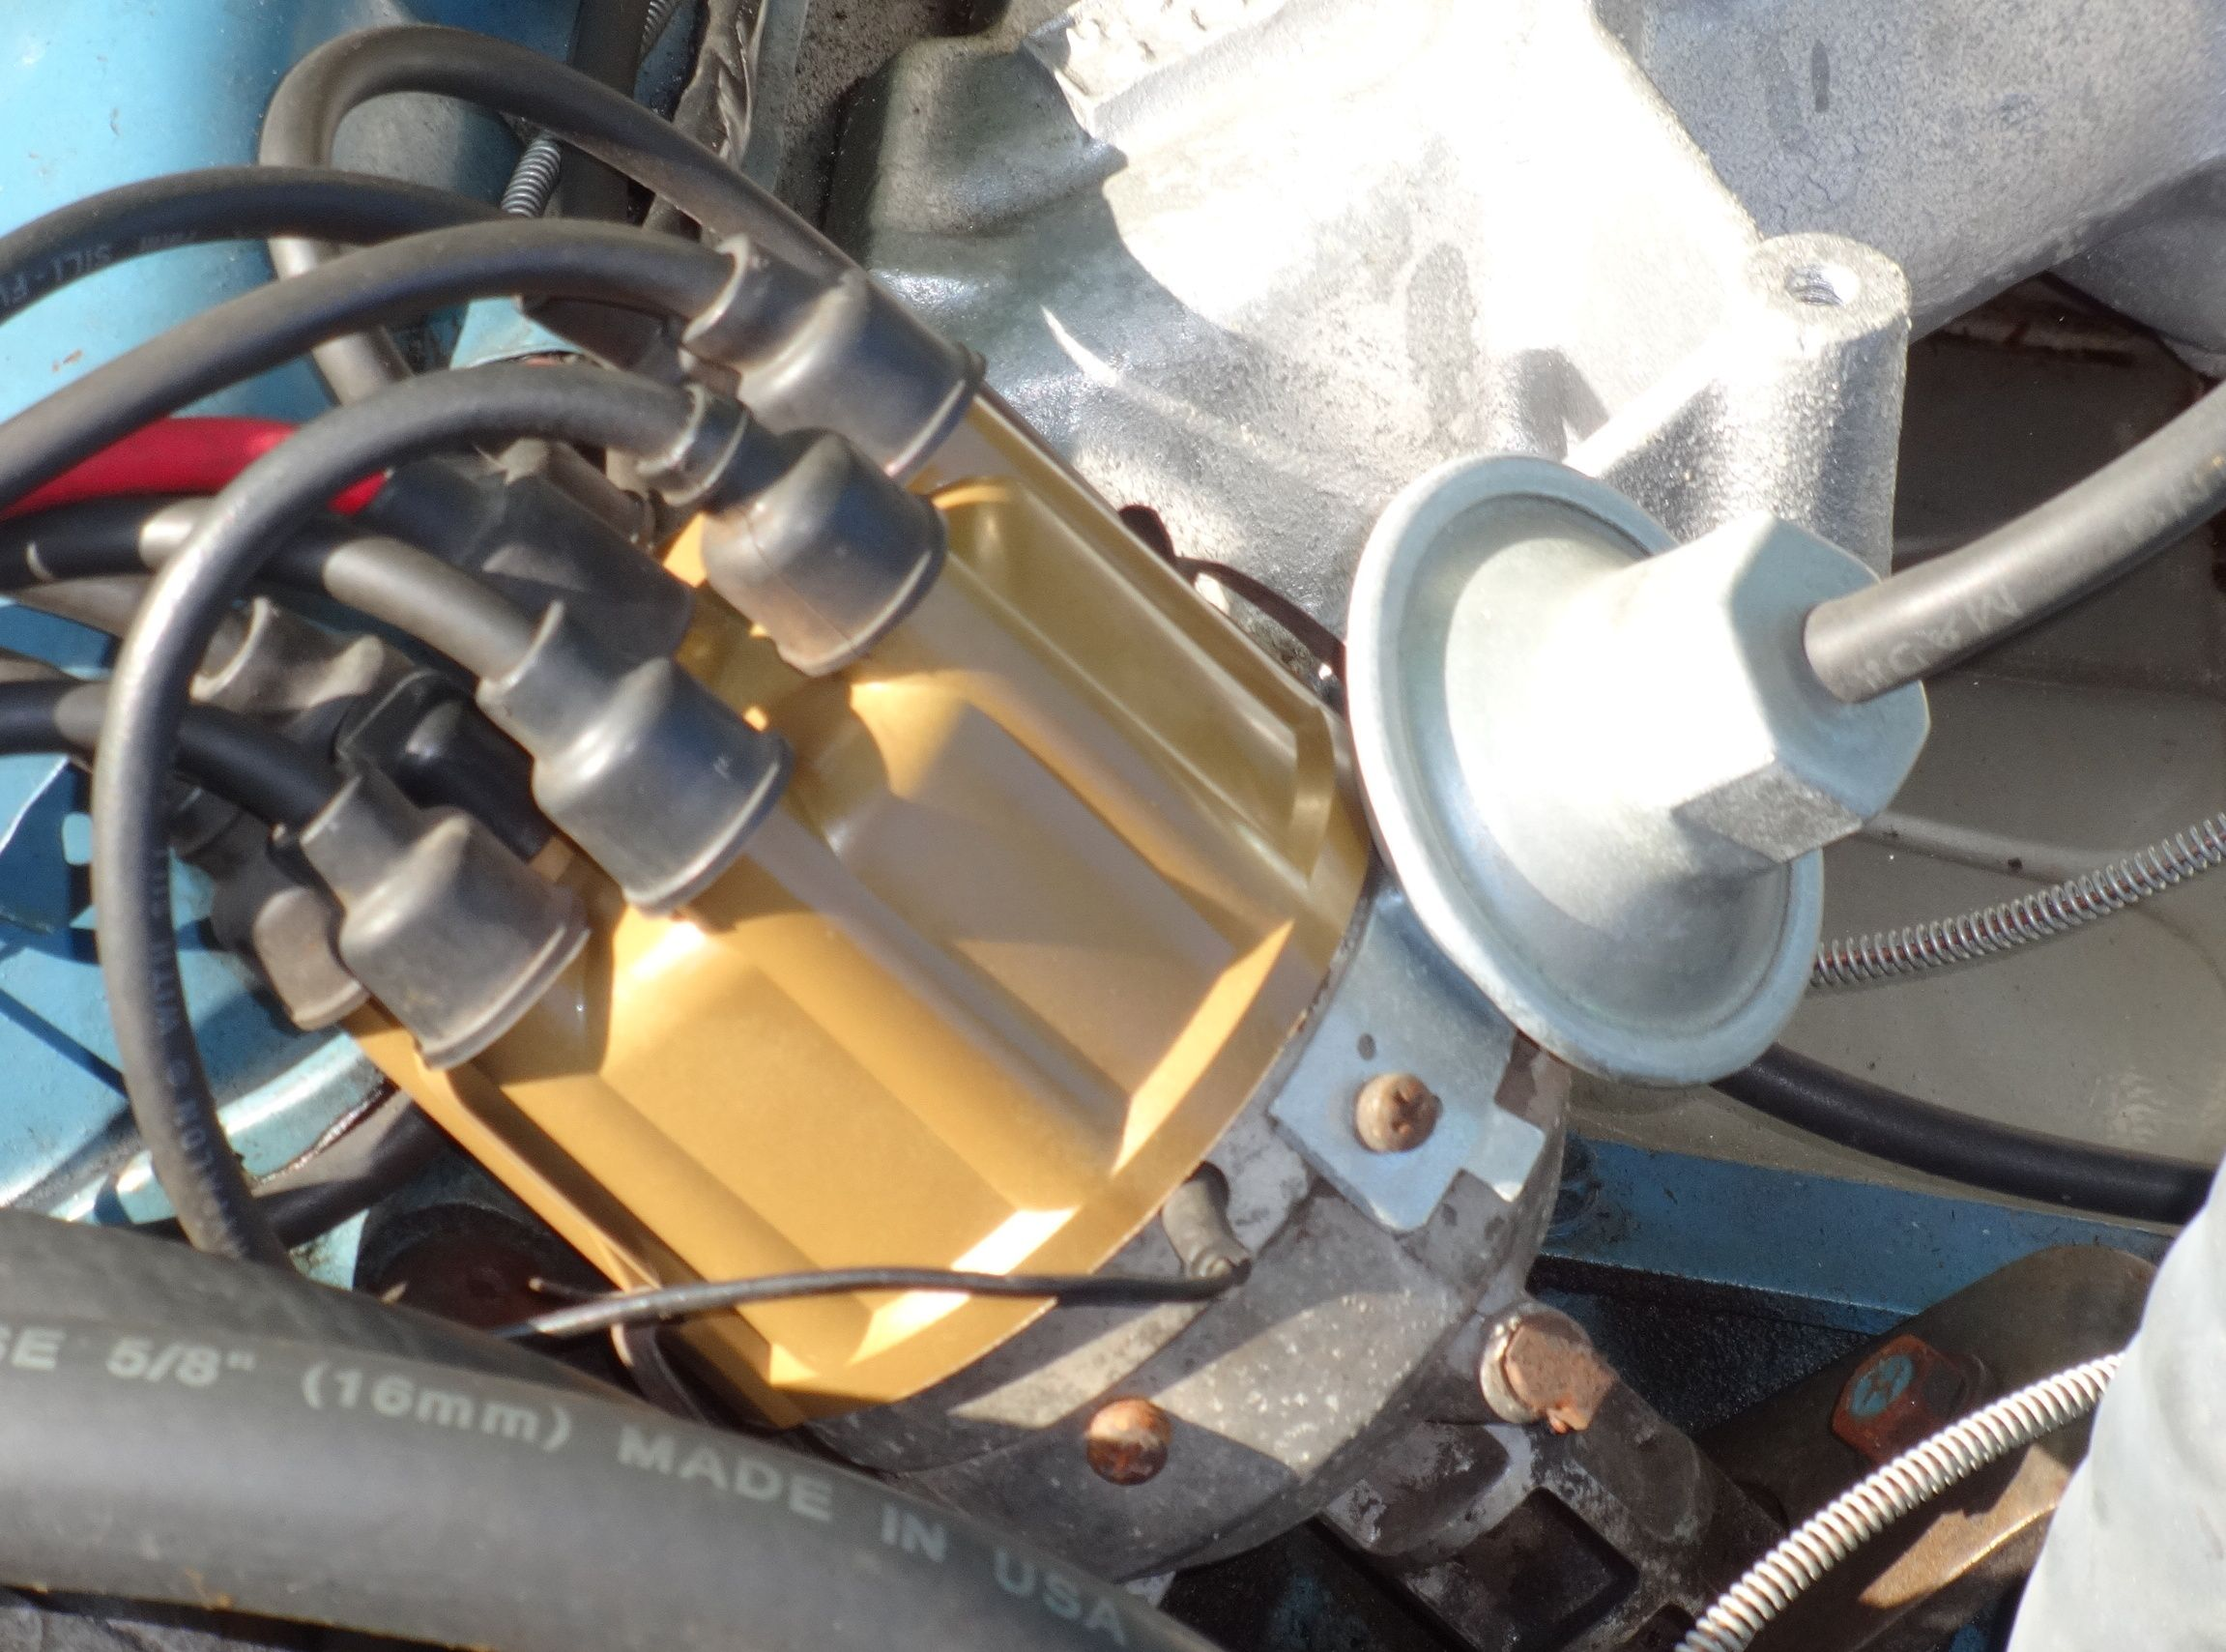 basic ignition wiring diagram 02 deville symptoms of vacuum advance problems in classic cars  symptoms of vacuum advance problems in classic cars